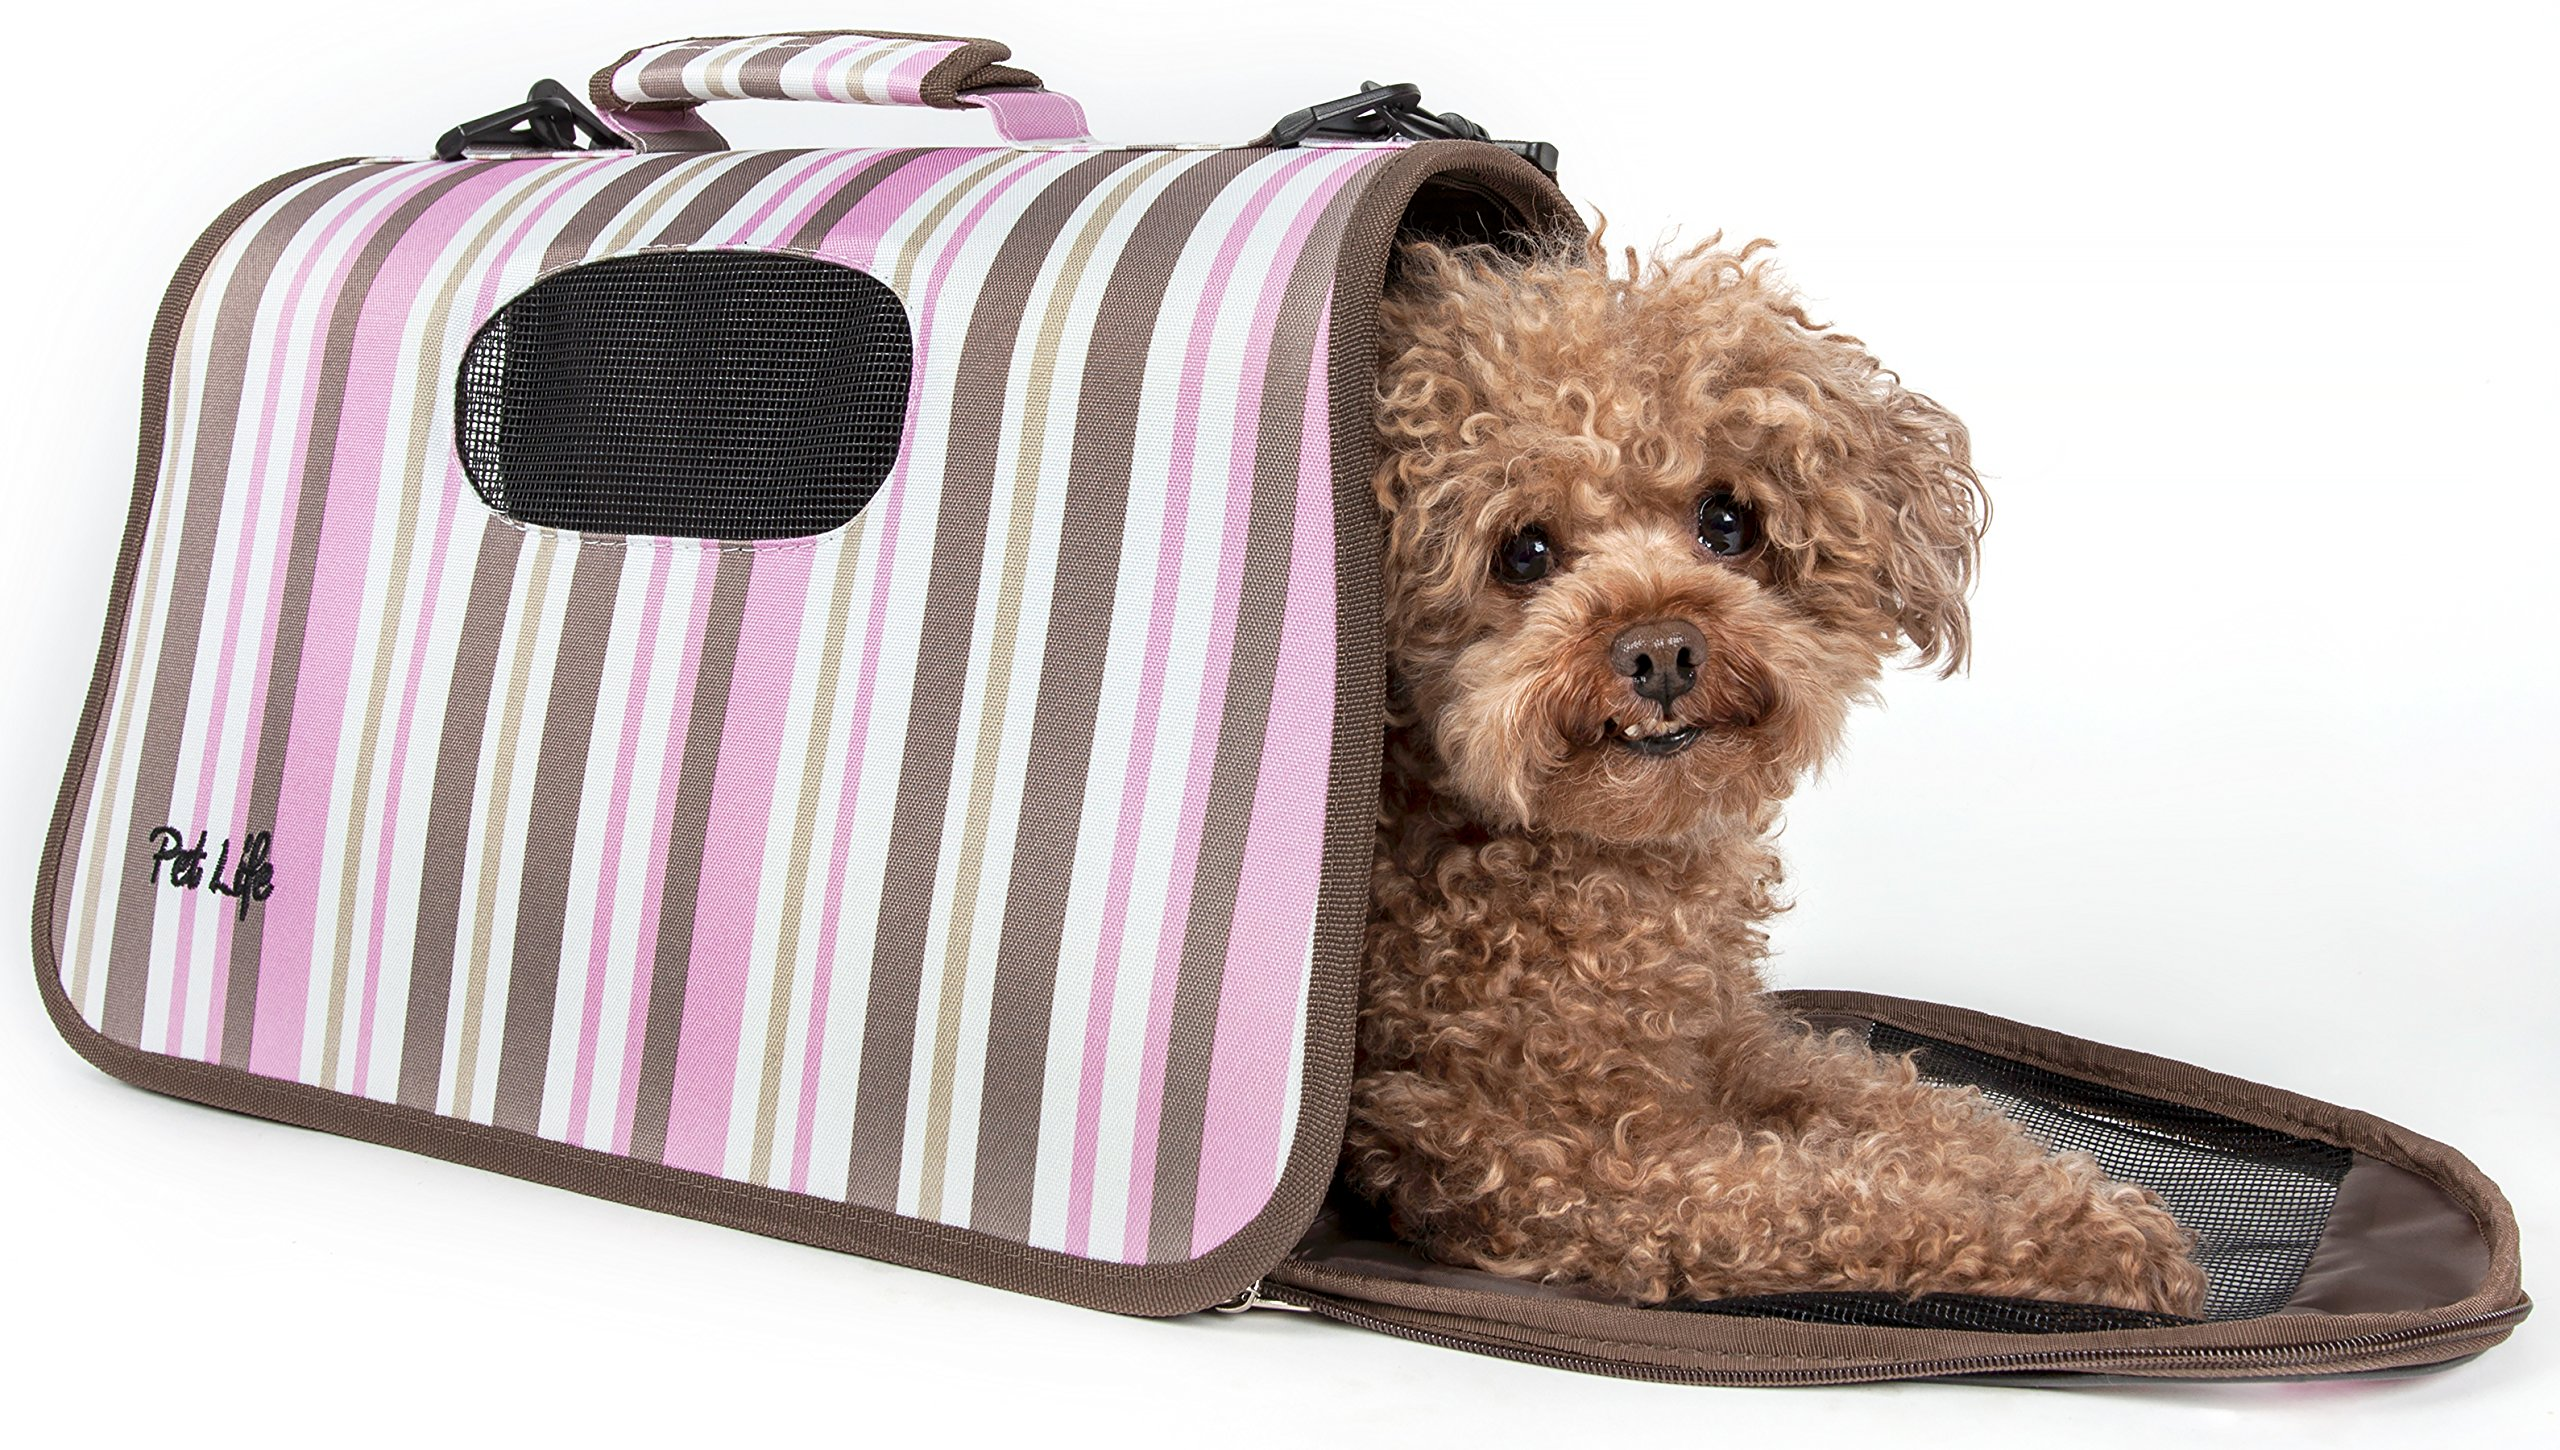 PET LIFE 'Sporty-Caged' Airline Approved Folding Collapsible Fashion Pet Dog Carrier, Medium, Stripe Pattern